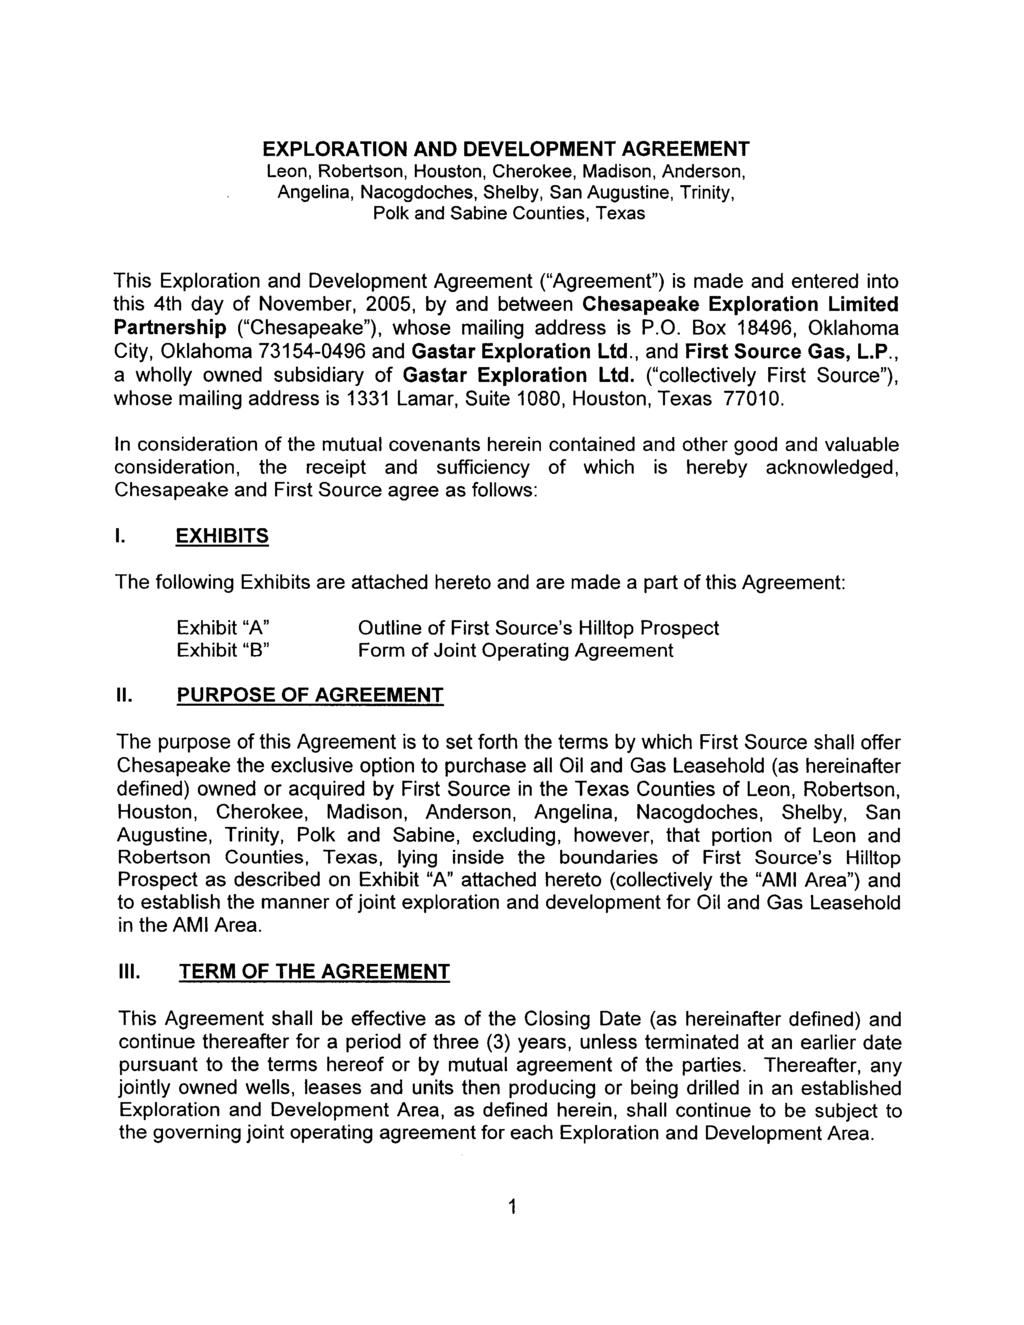 Case 4:12-cv-02922 Document 7-5 Filed in TXSD on 10/24/12 Page 1 of 8 EXPLORATION AND DEVELOPMENT AGREEMENT Leon, Robertson, Houston, Cherokee, Madison, Anderson, Angelina, Nacogdoches, Shelby, San